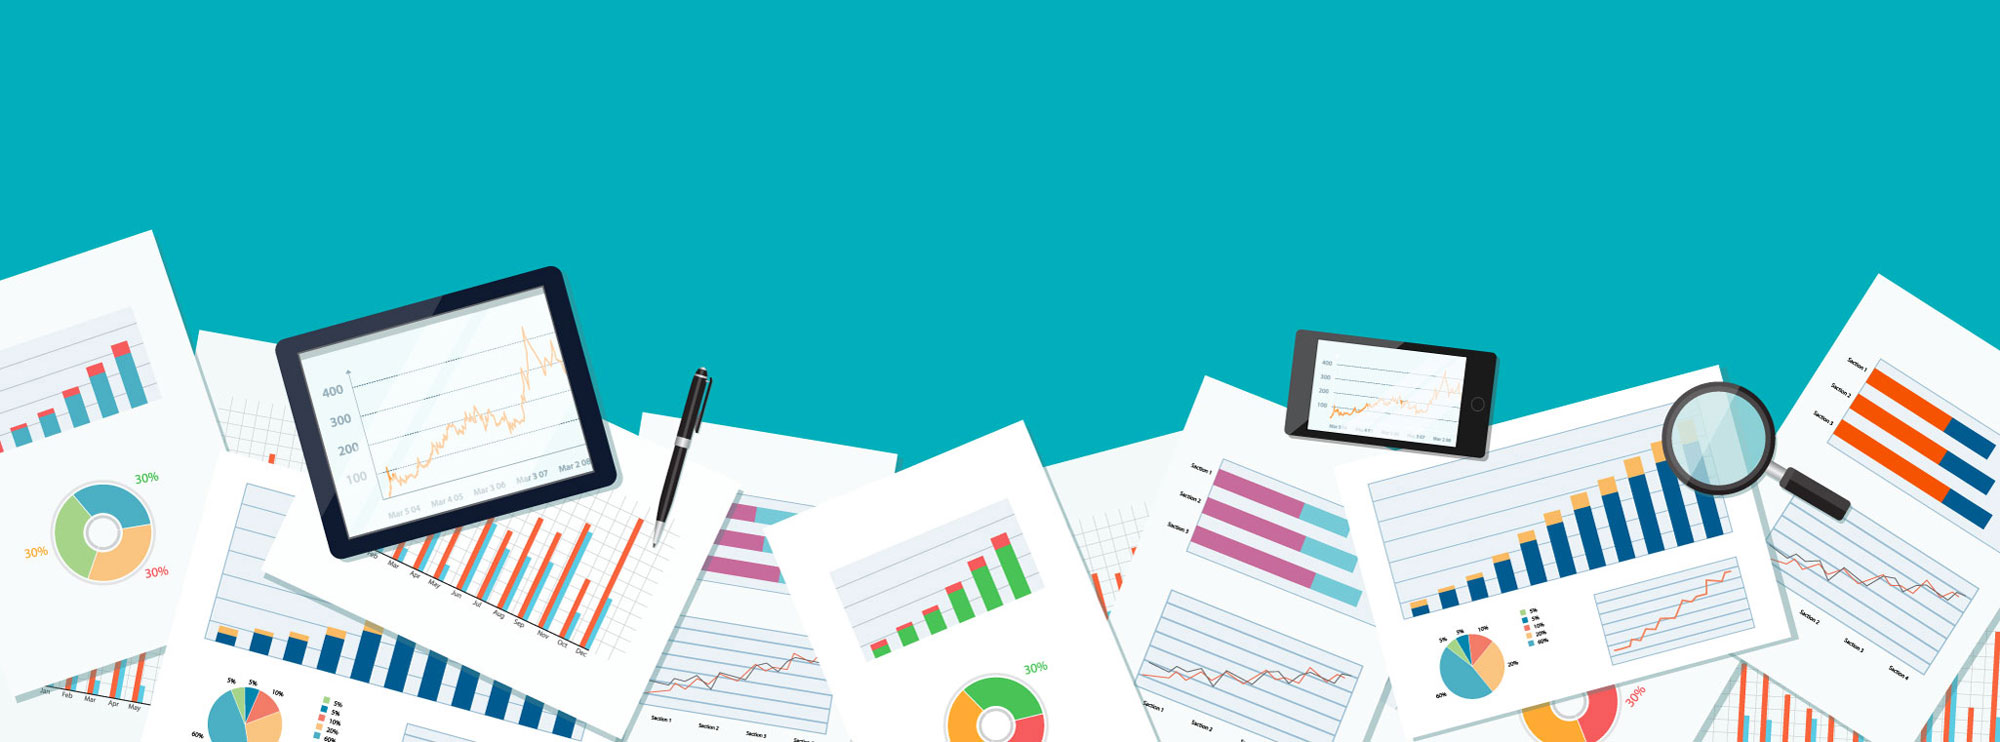 Creating measurable results that impact your bottom-line